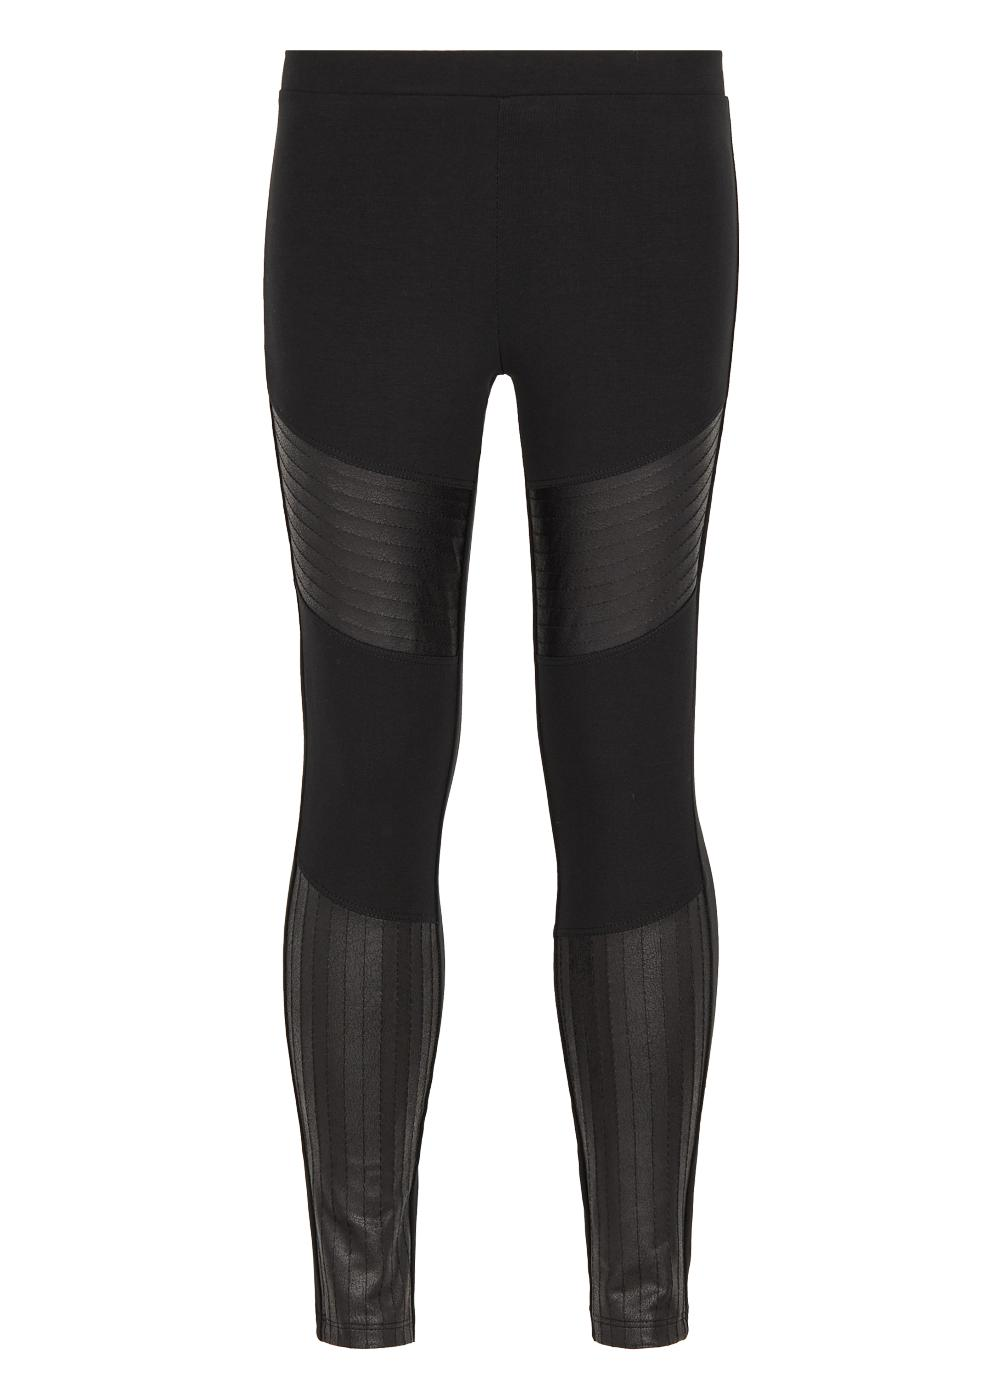 Cotton leggings with leather look biker style inserts